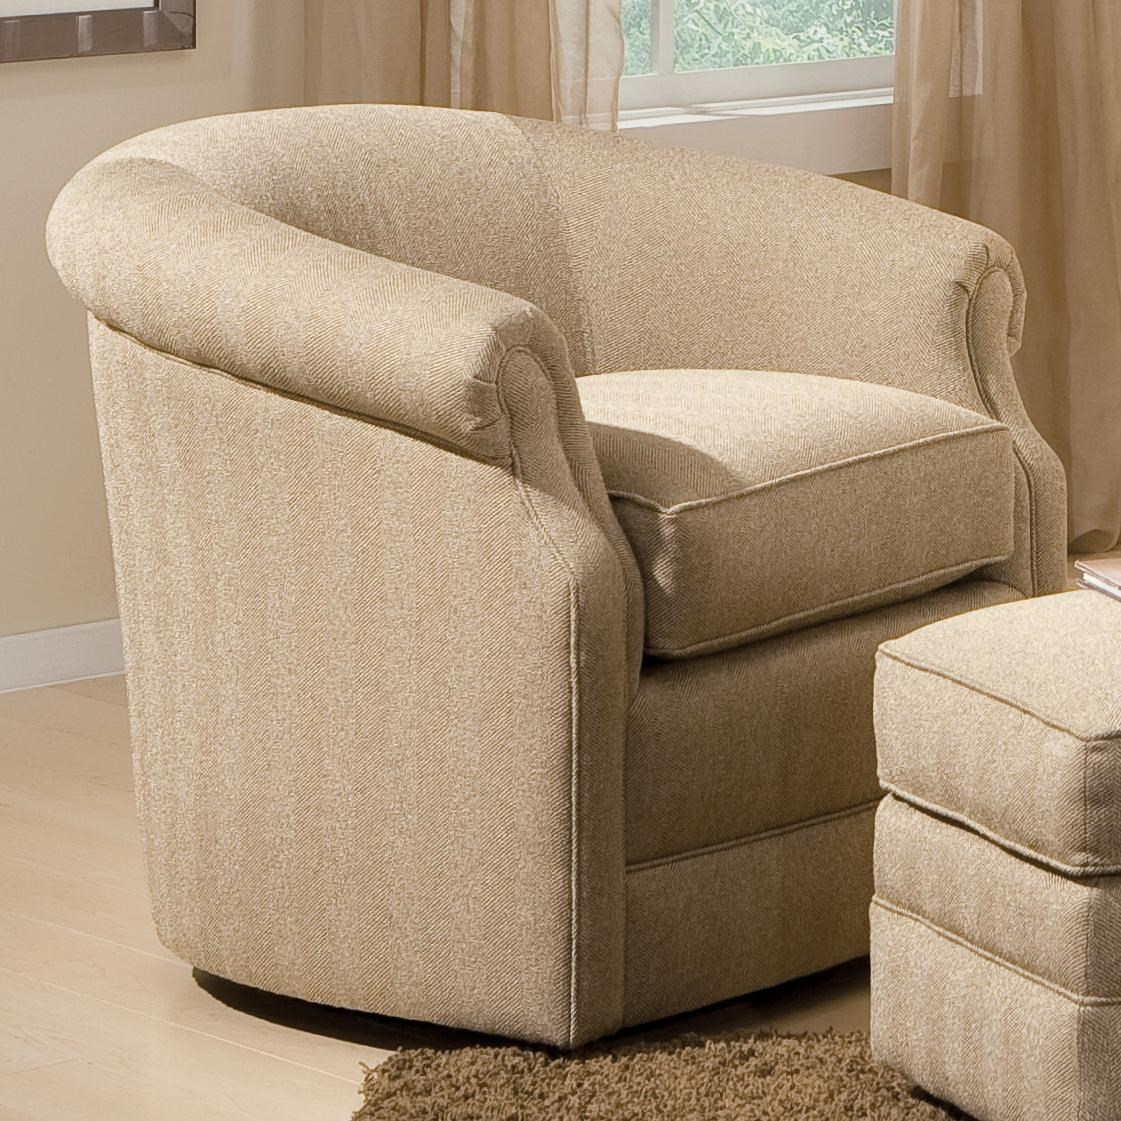 Merveilleux Smith Brothers Accent Chairs And Ottomans SBBarrel Swivel Chair ...